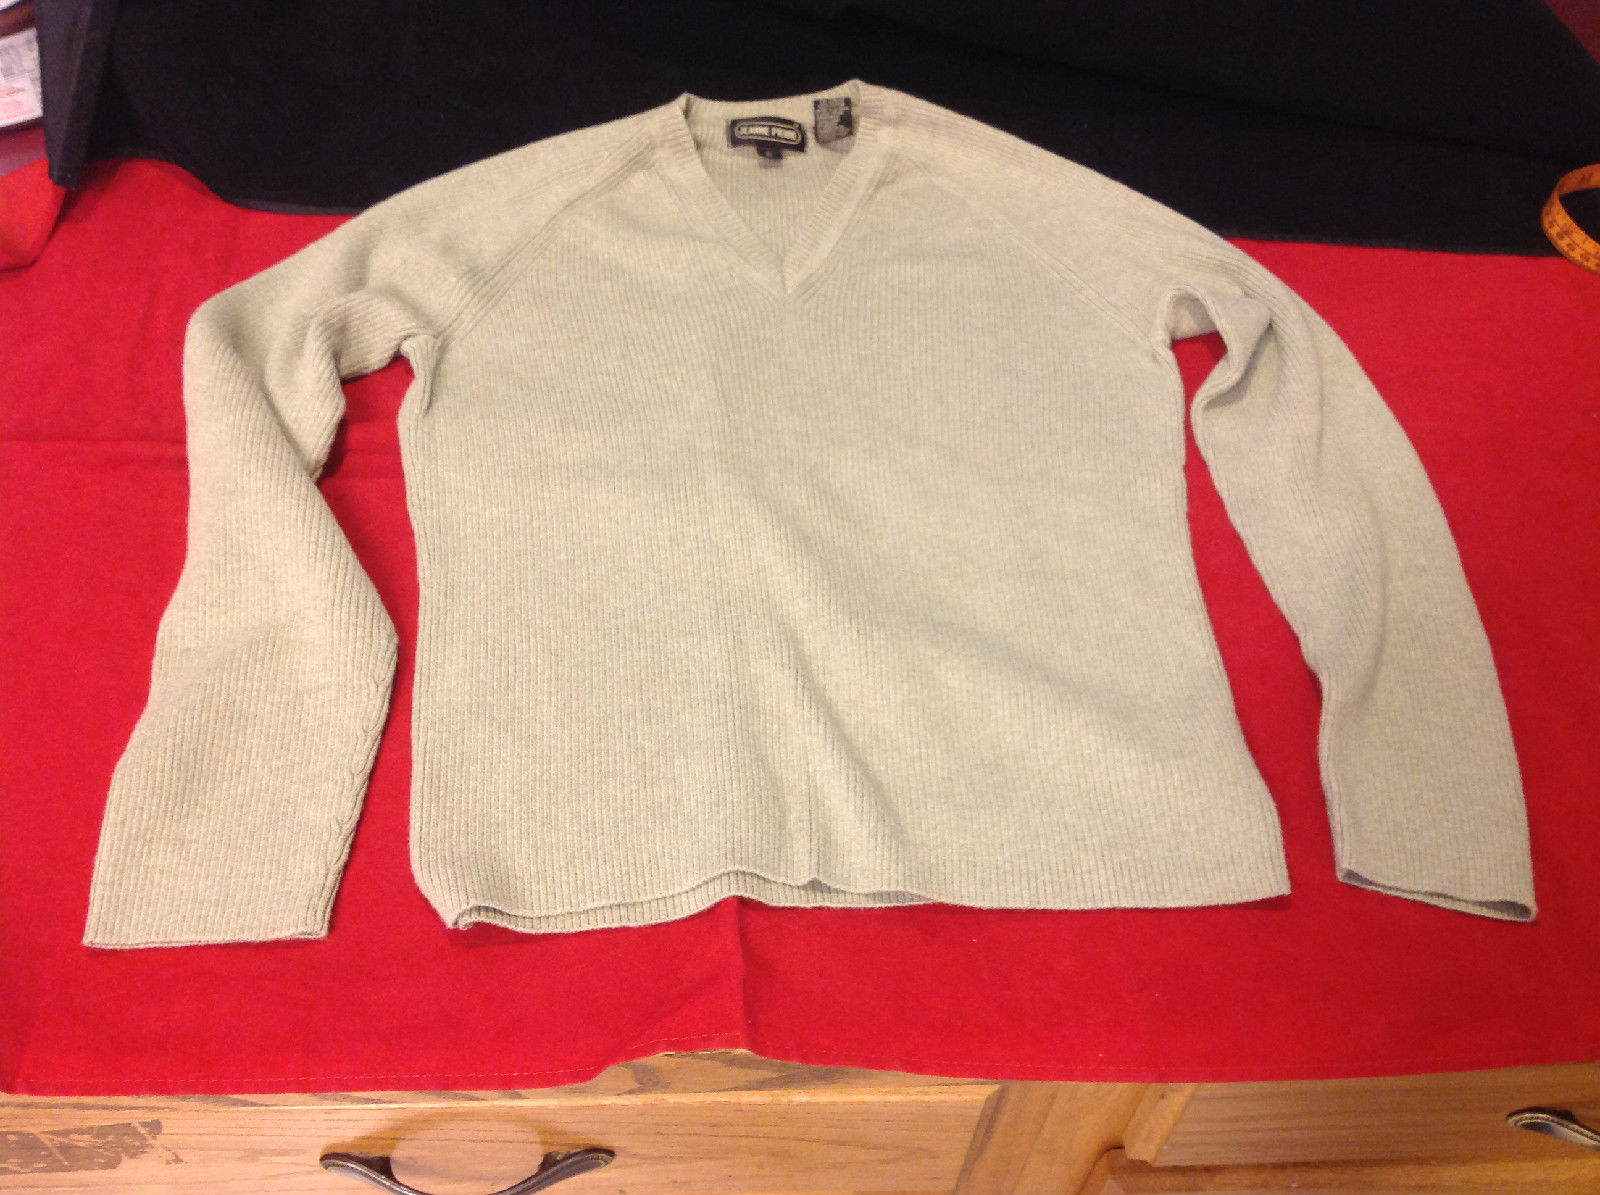 Ladies Olive Colored V-Neck Sweater by Jeanne Pierre Size Small Good Condition